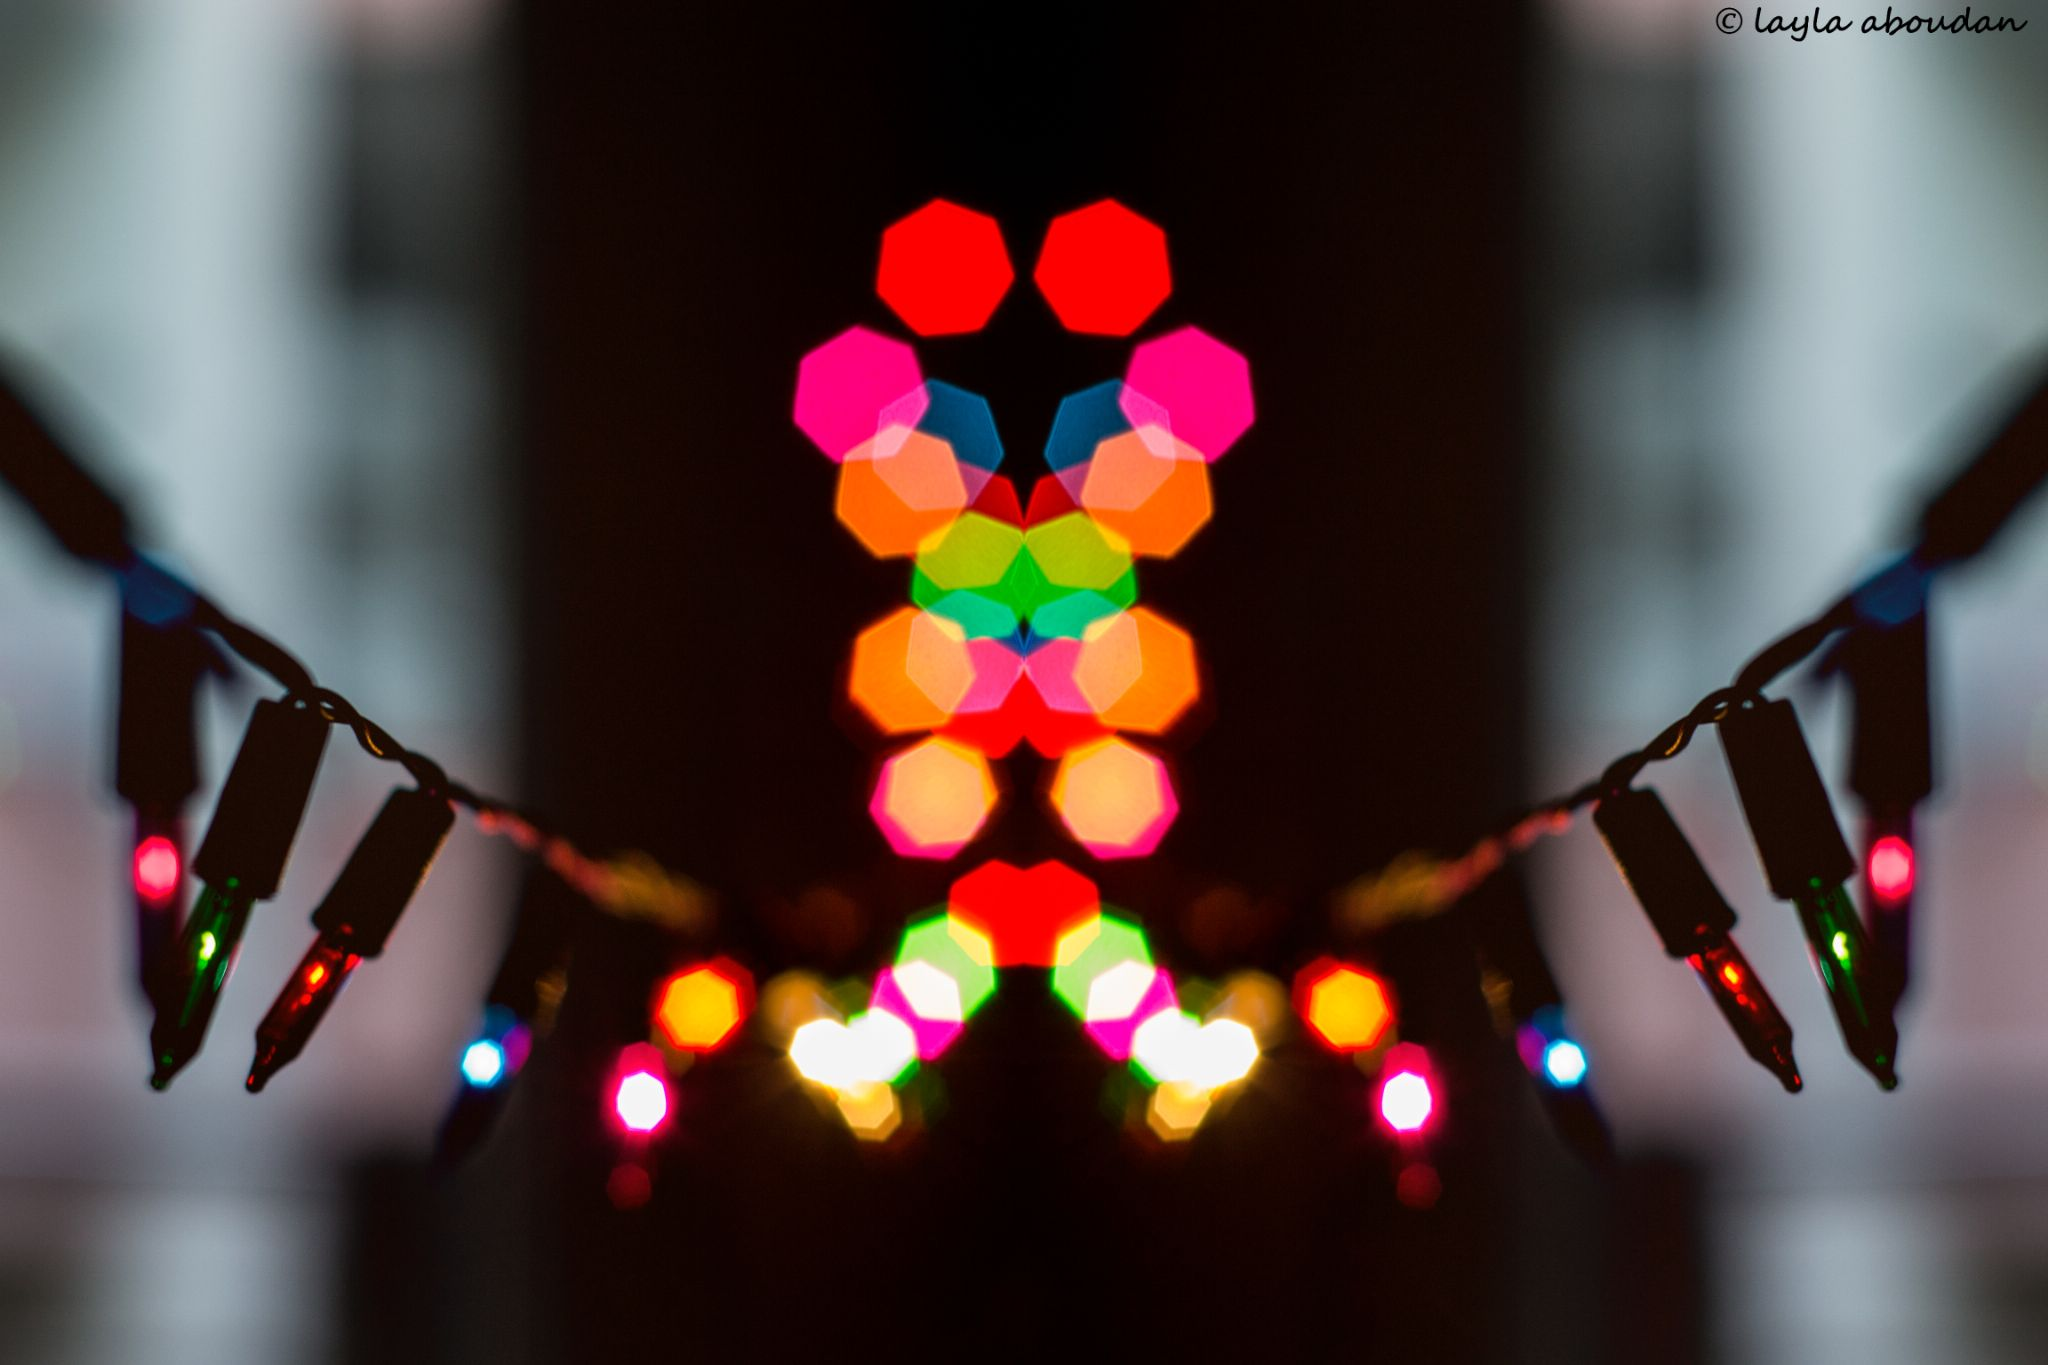 lights will guide you home by Layla Aboudan